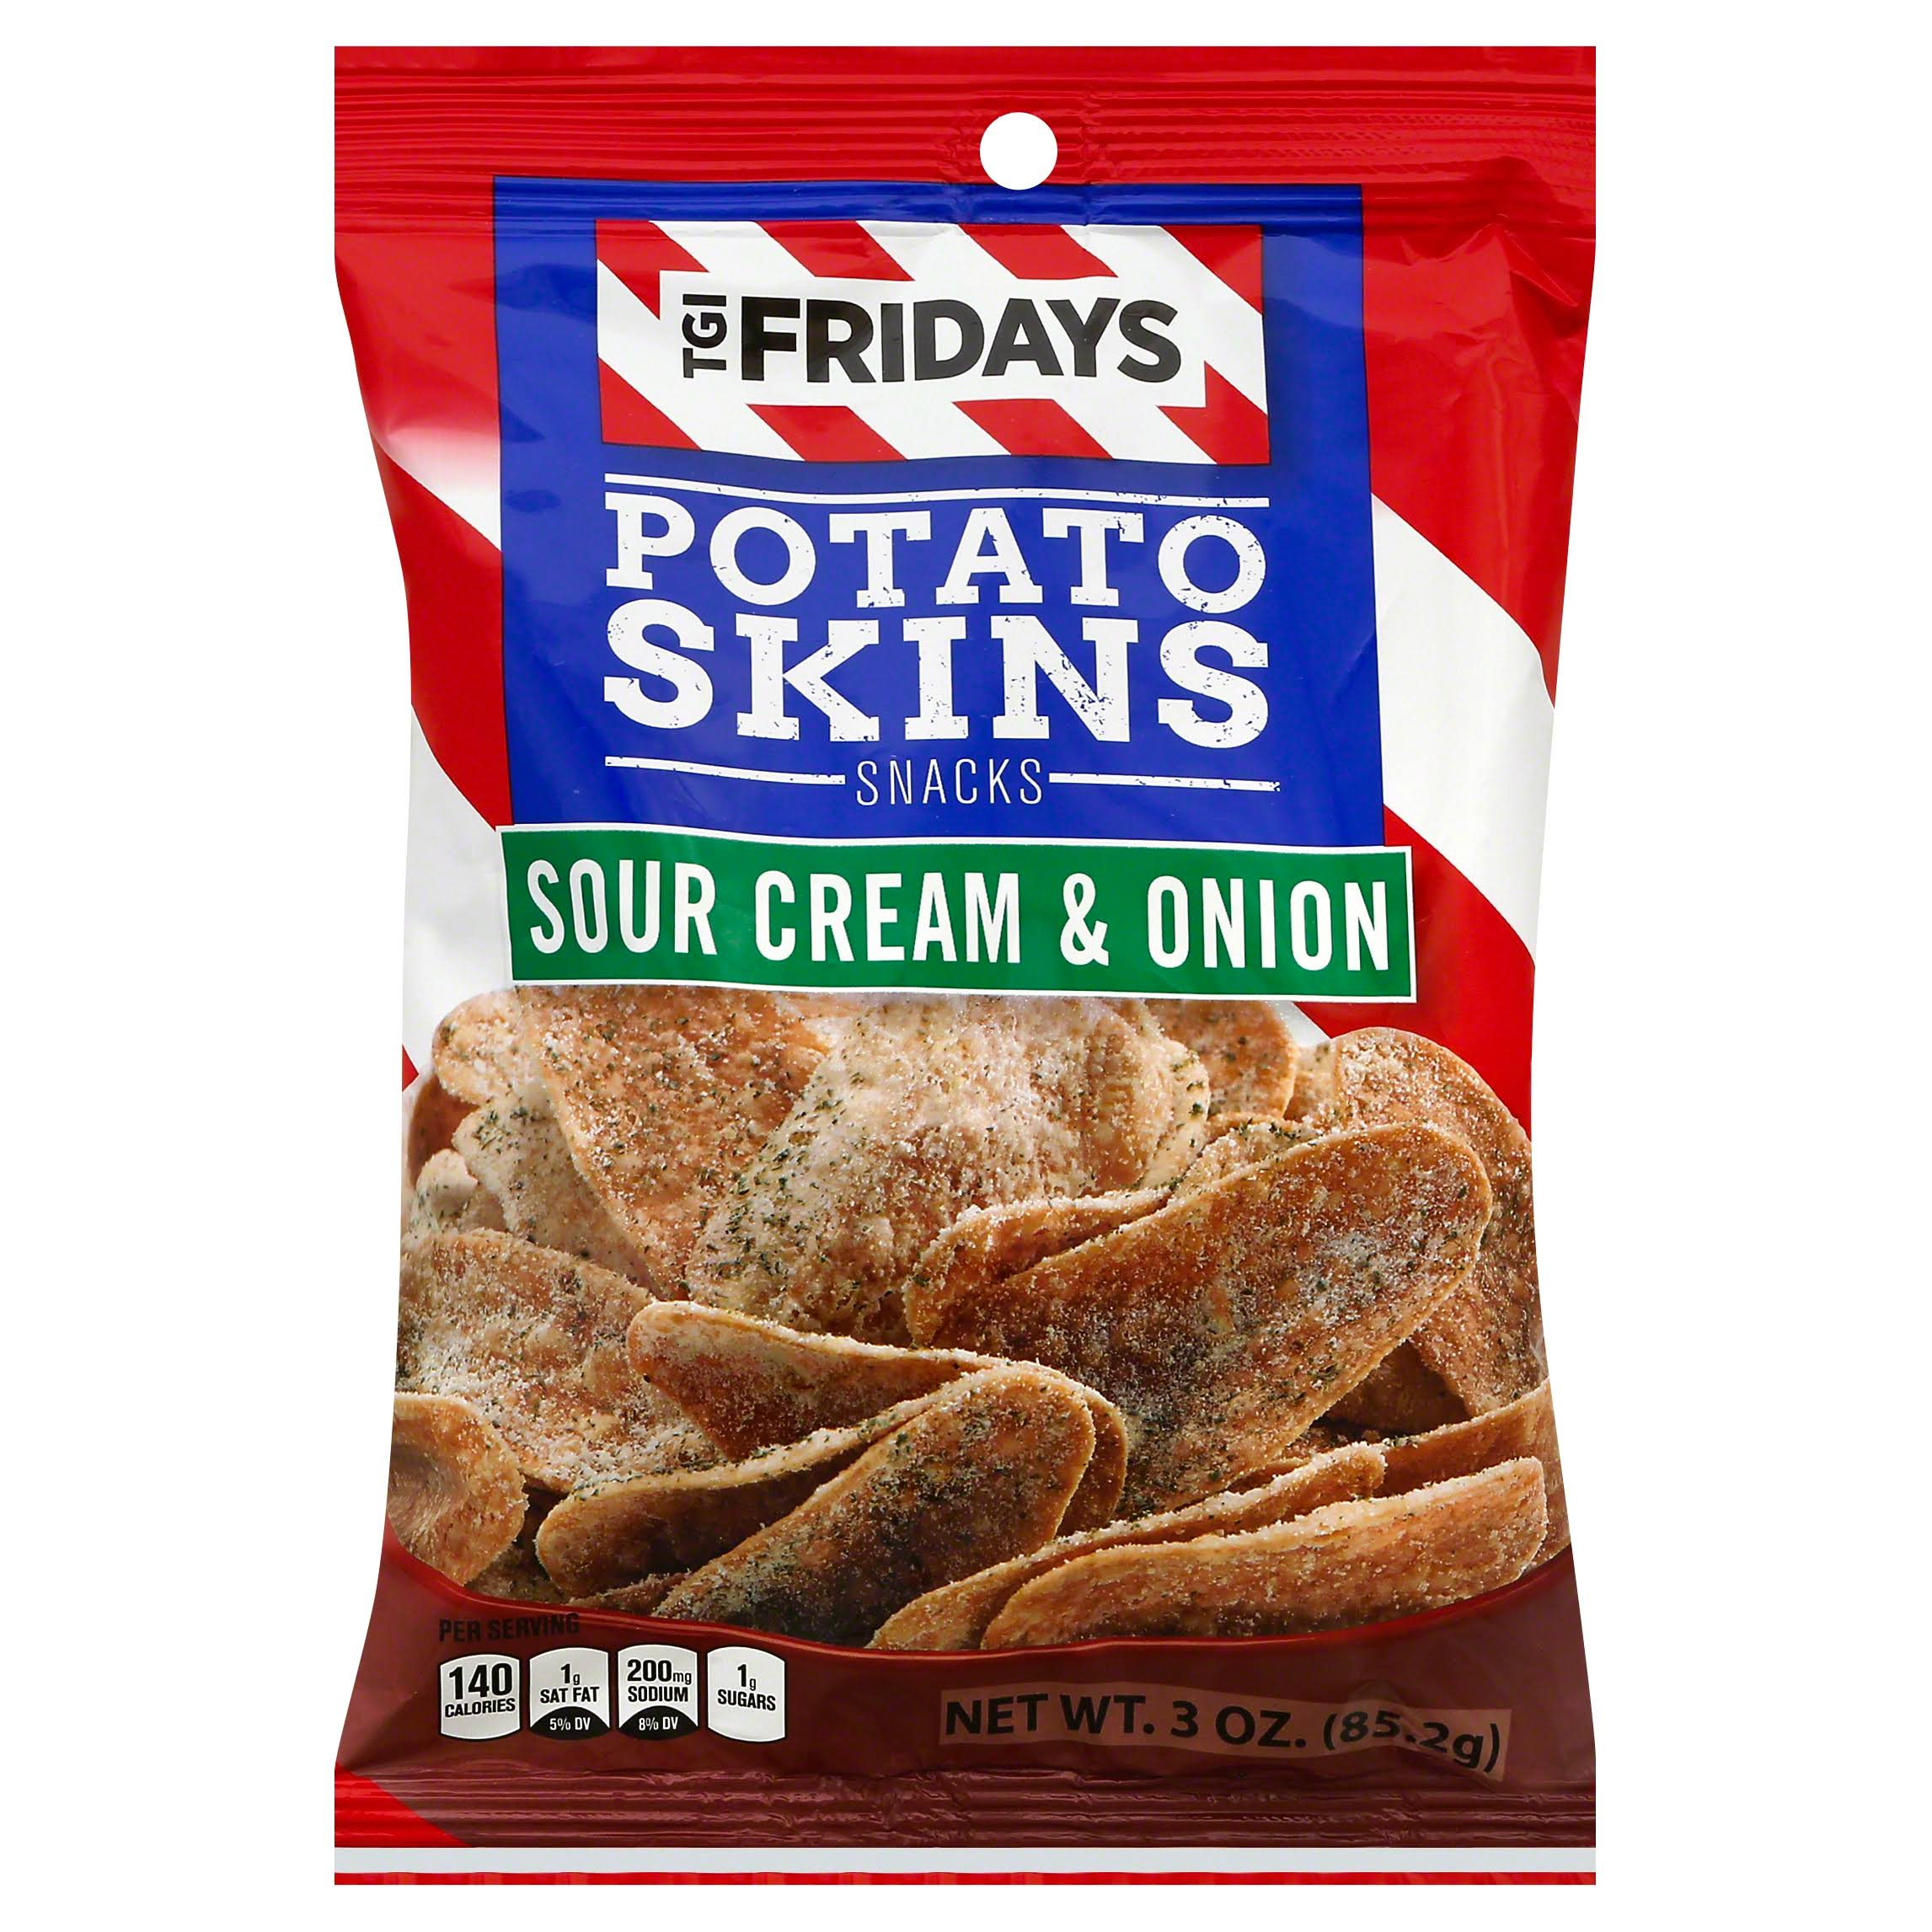 TGI Fridays Potato Skins Snacks, Sour Cream & Onion - 3 oz